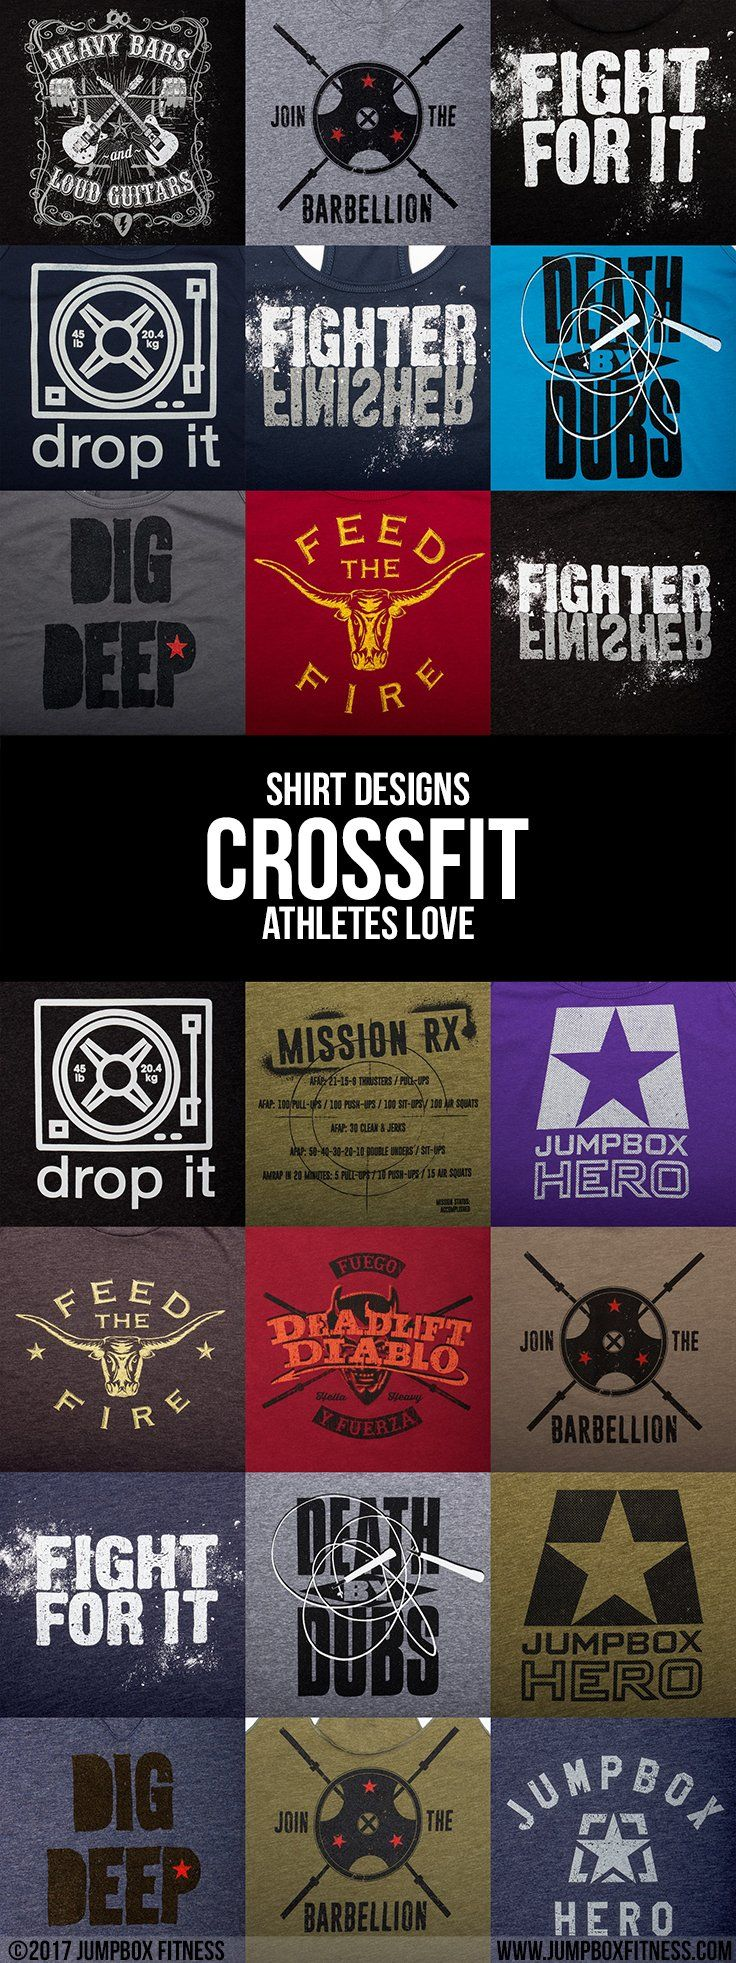 c0747a1fd Shirt Designs Crossfit Athletes Love - Jumpbox Fitness - Gym Workout  t-shirts, tank tops, and hoodies - Great for Crossfit, weightlifting,  kettlebell, ...